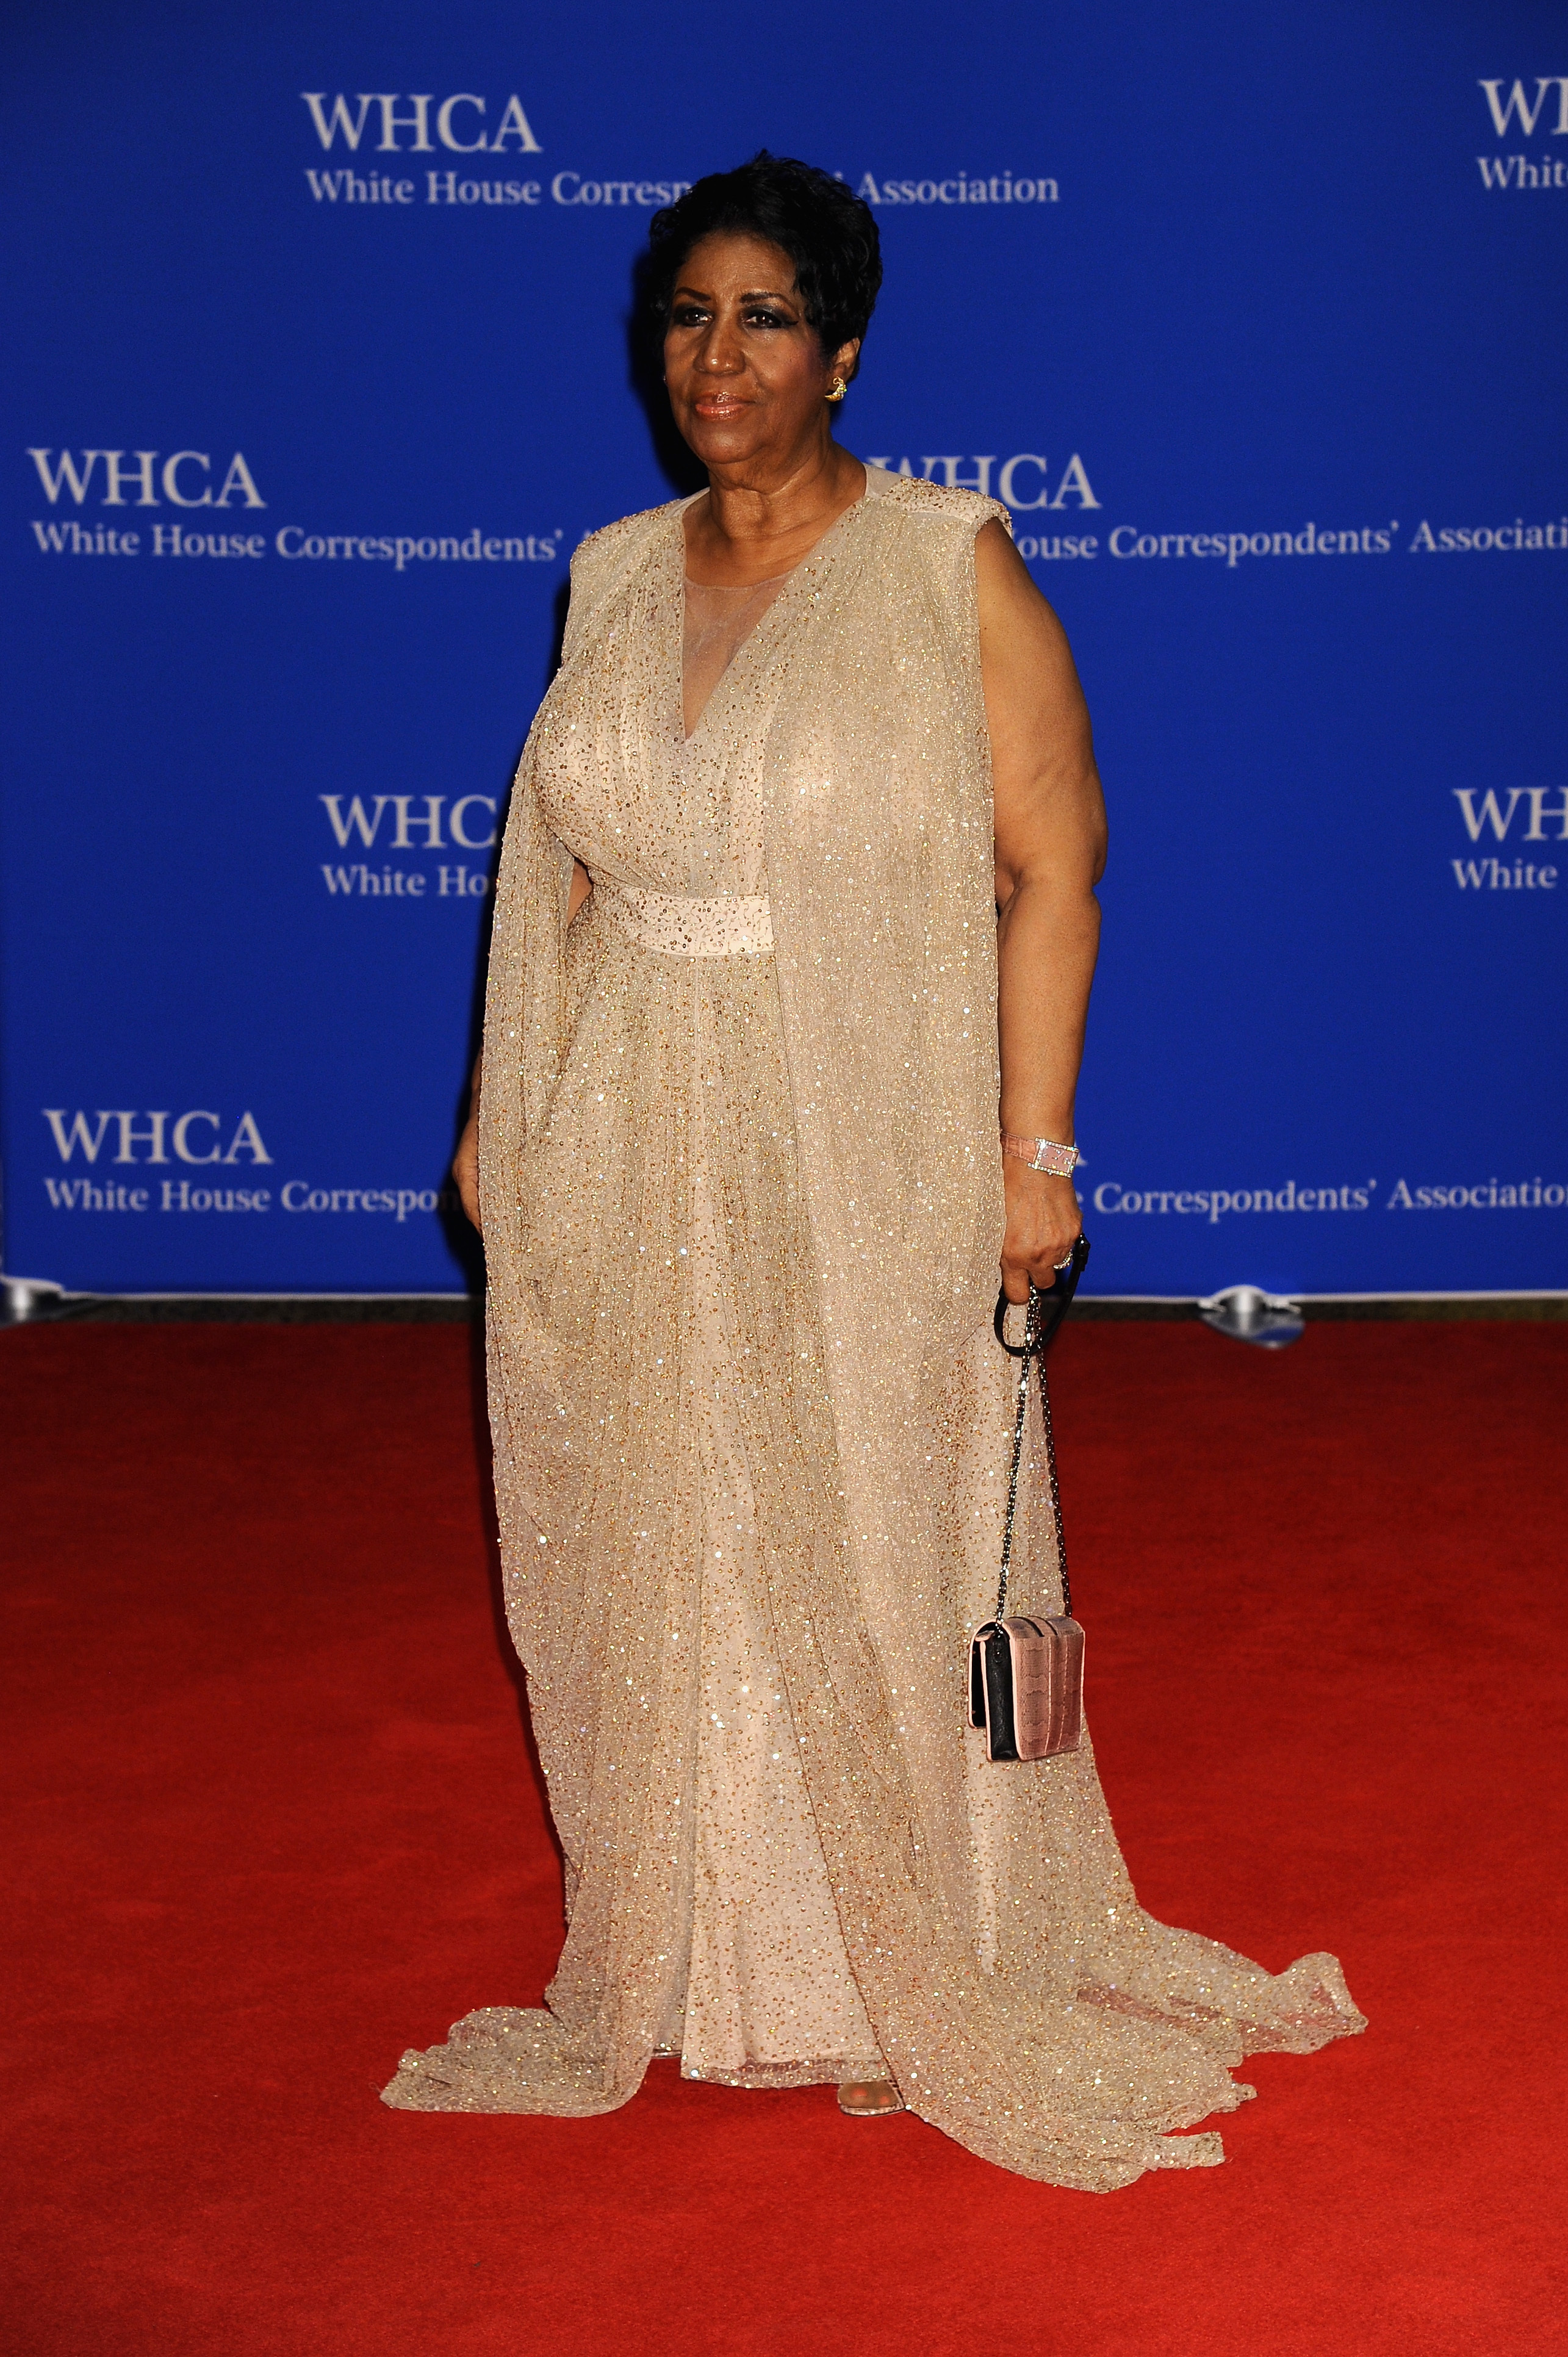 Aretha Franklin cancels shows due to health concerns